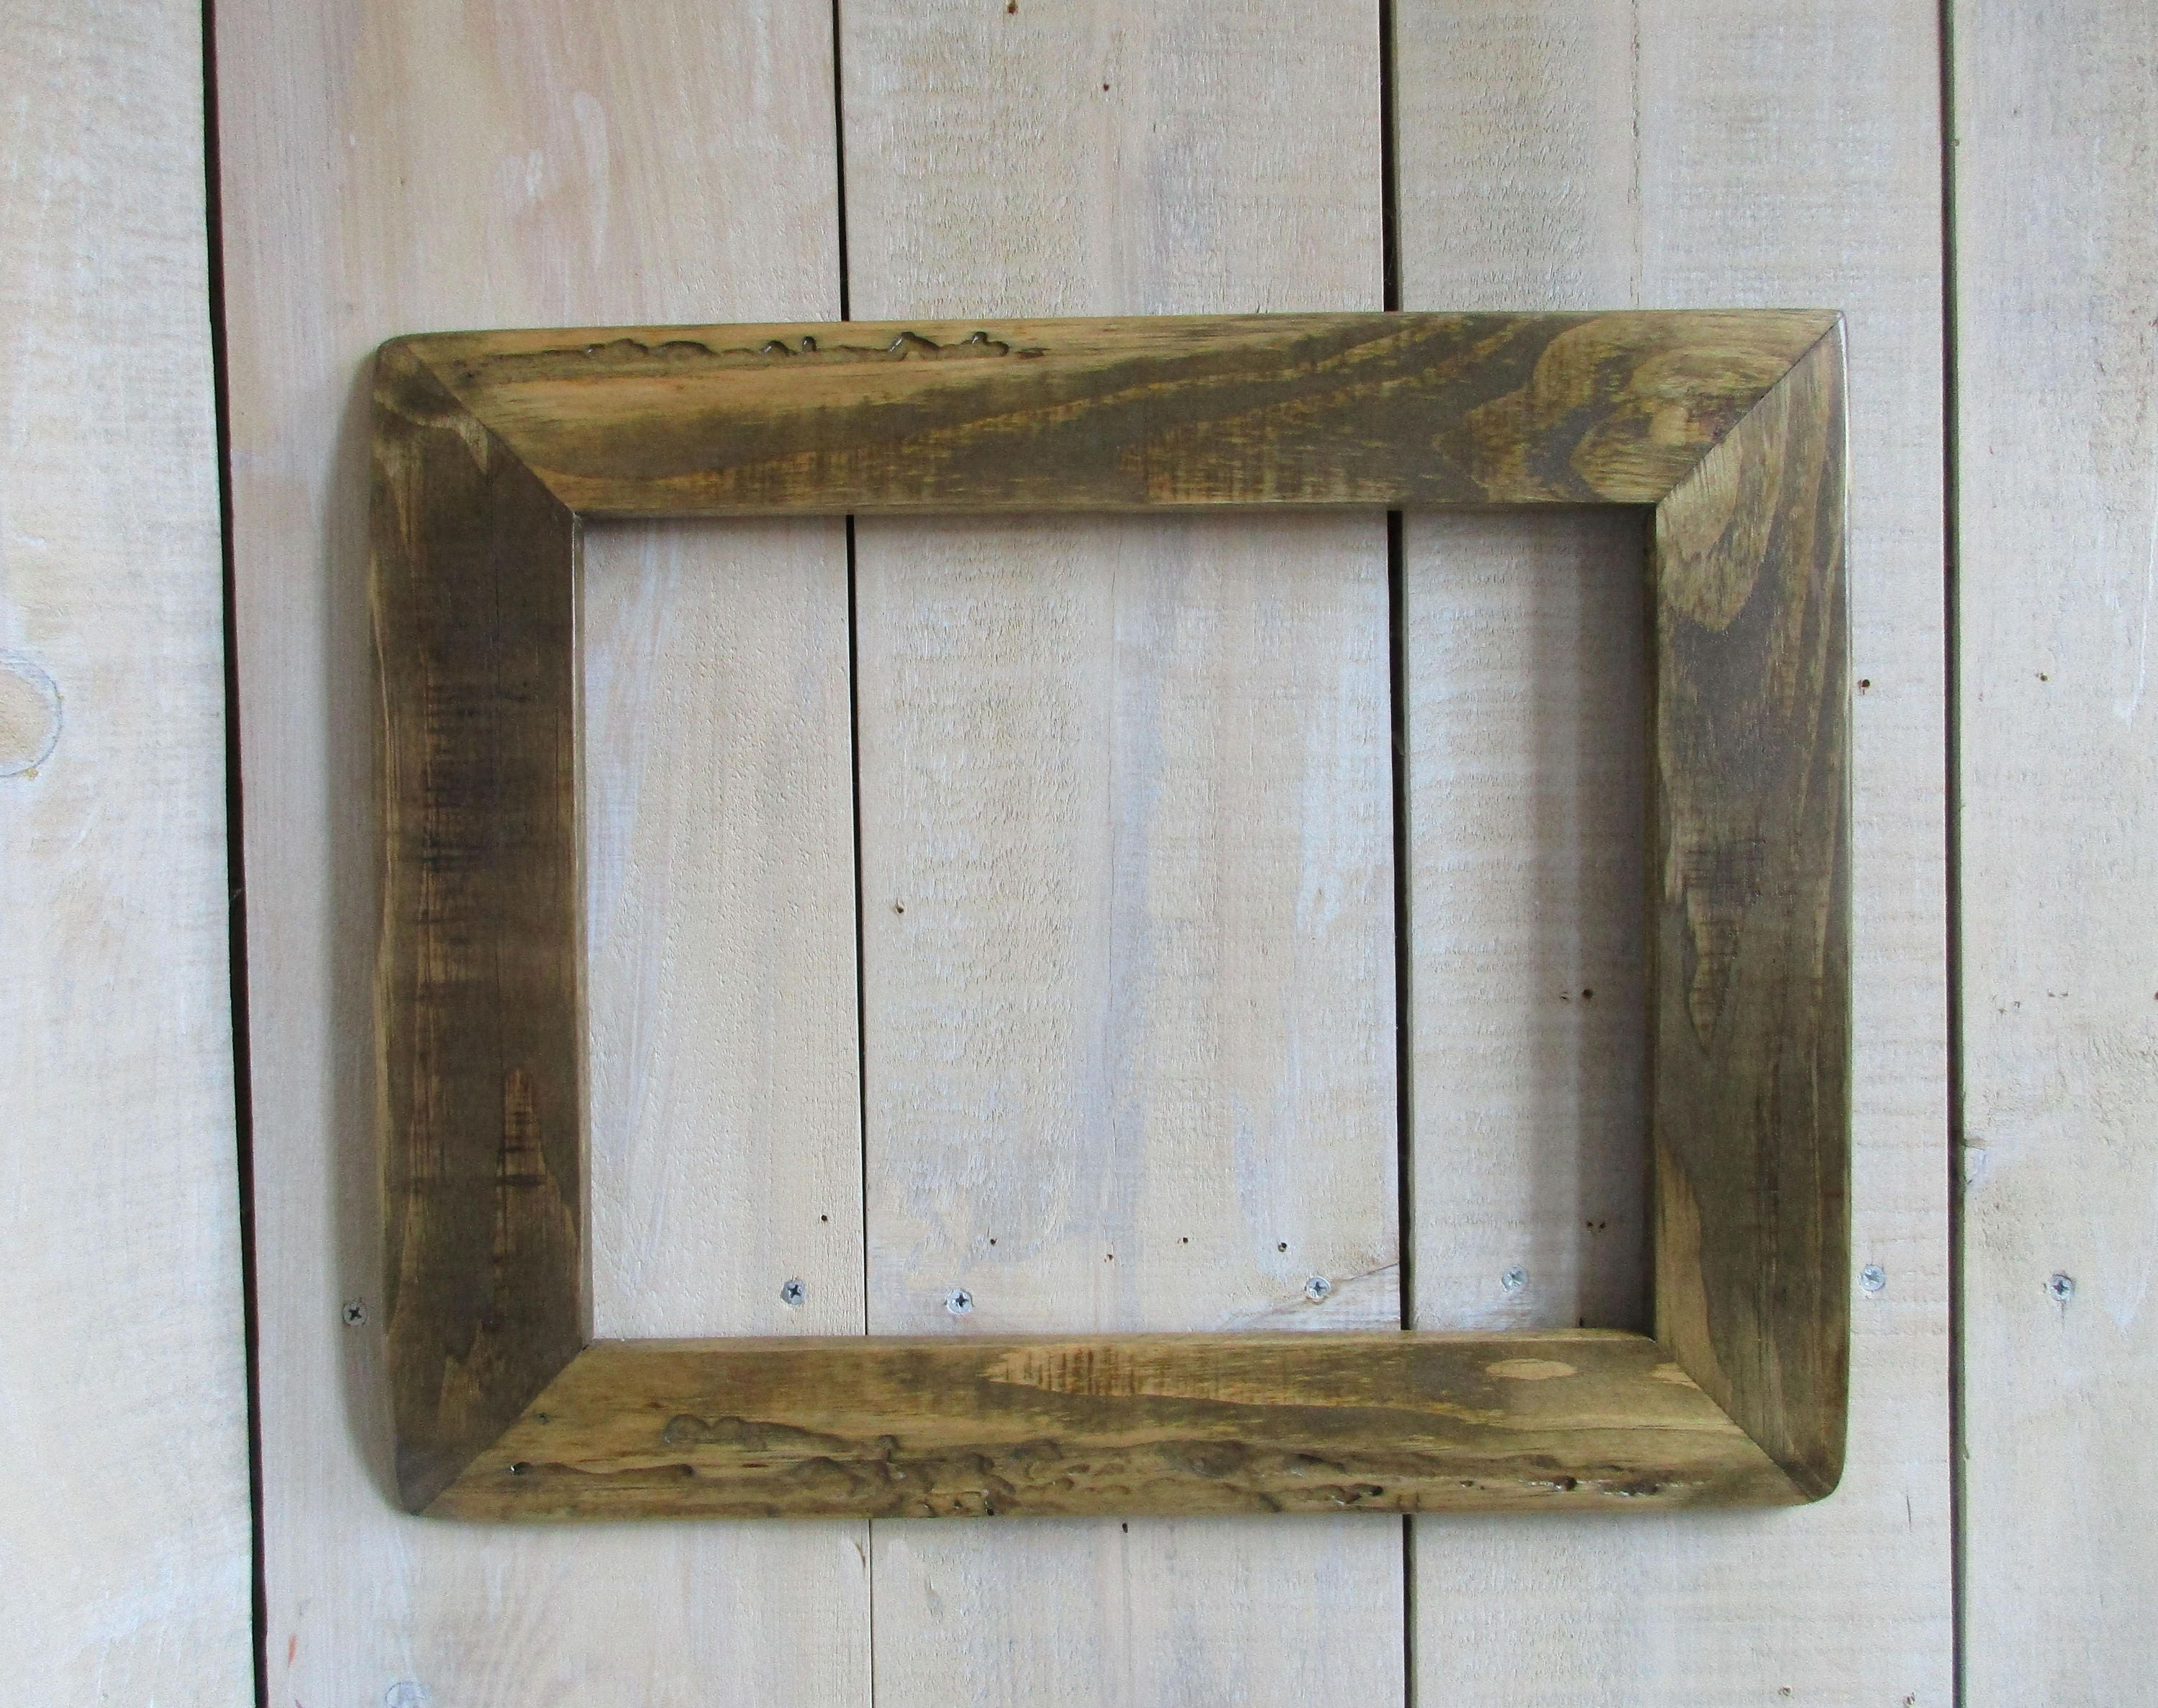 Rustic Furniture Stain Handmade Rustic Wood Frame 11 X 14 Live Edge Wood Driftwood